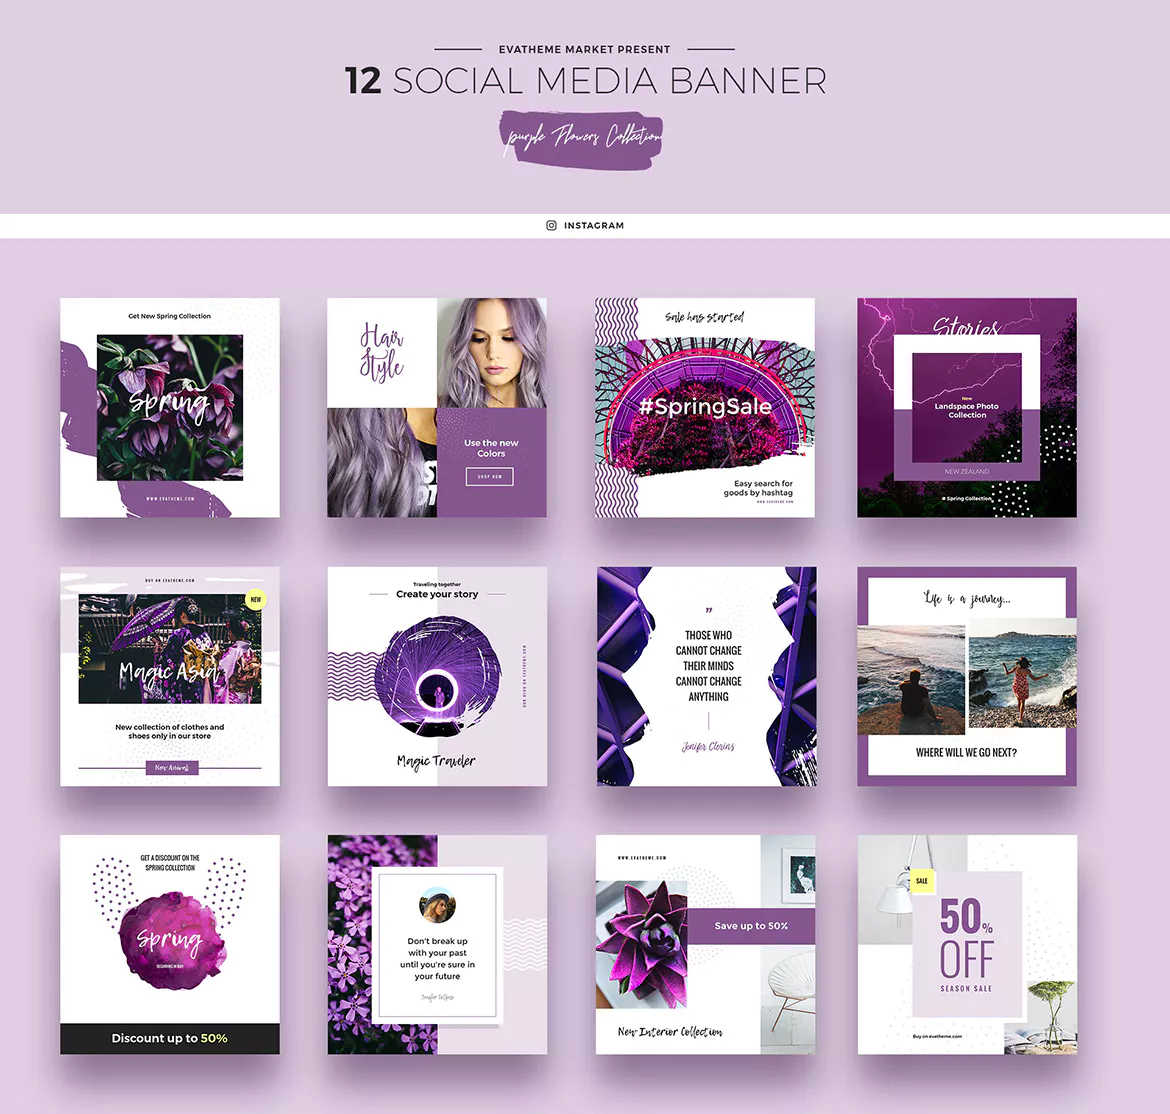 social media images pantone color of the year 2018